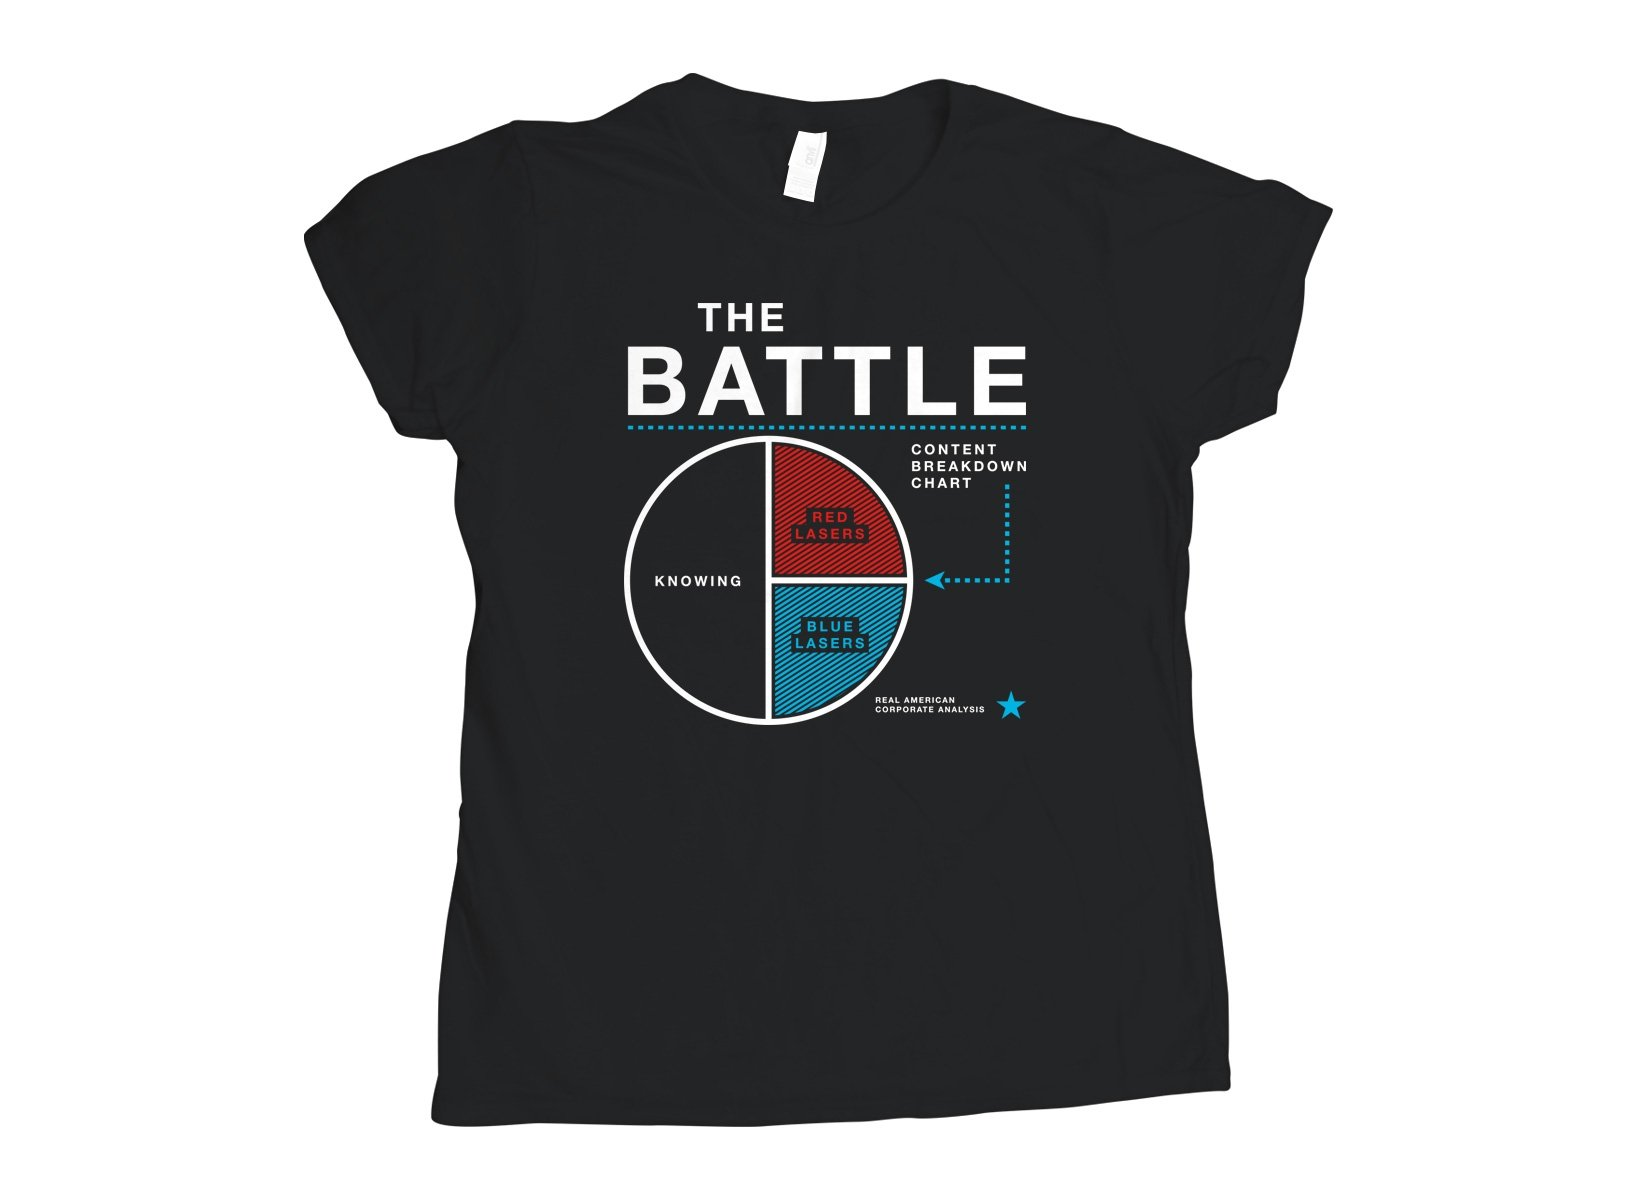 The Battle on Womens T-Shirt